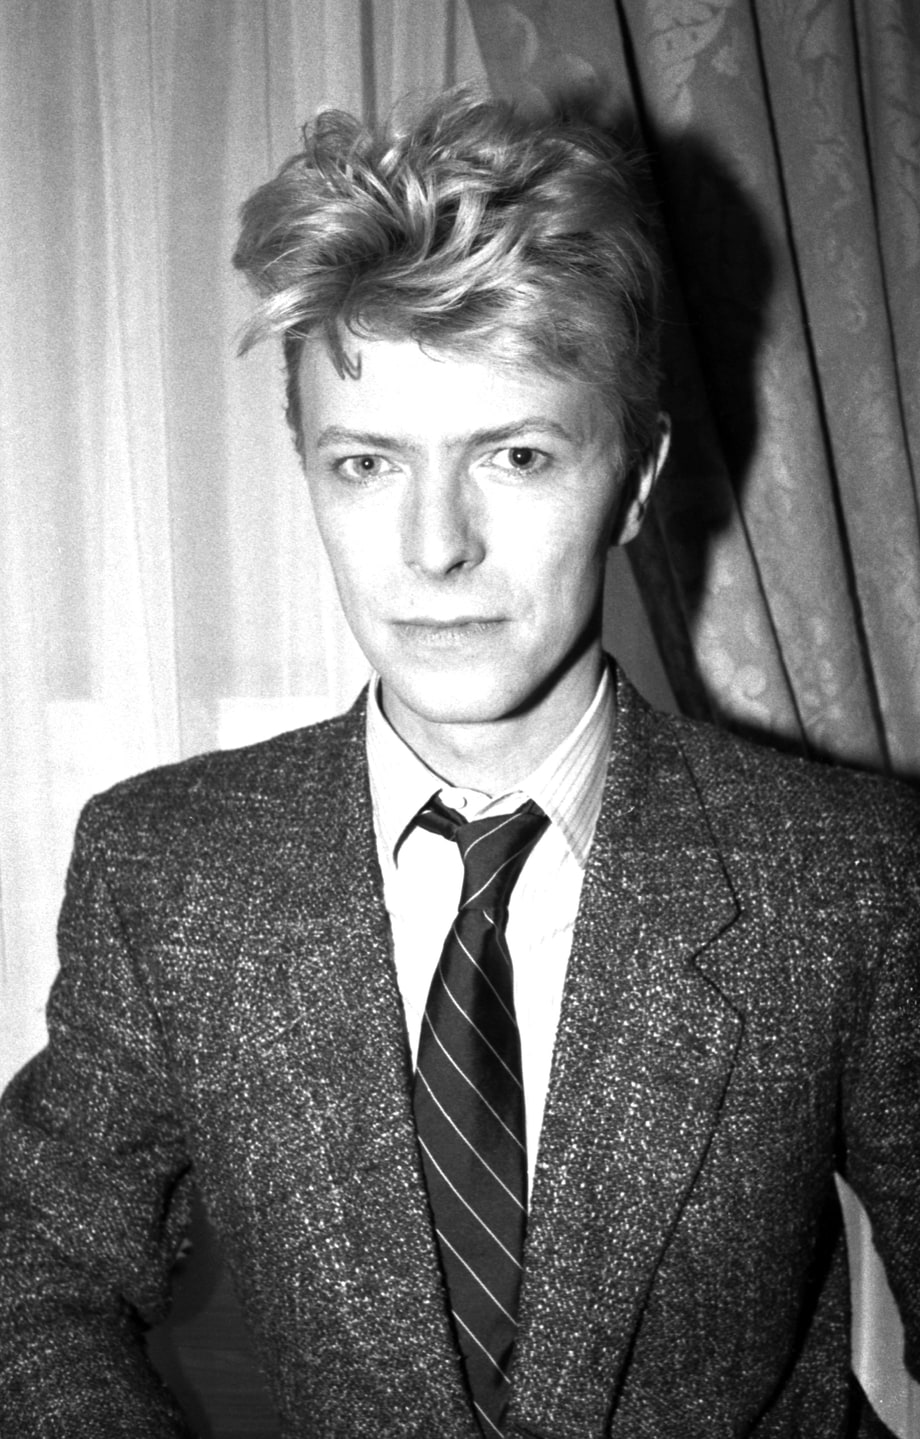 Fall Feather Wallpaper David Bowie Gives Good Face Oh Snap 20 Landmark